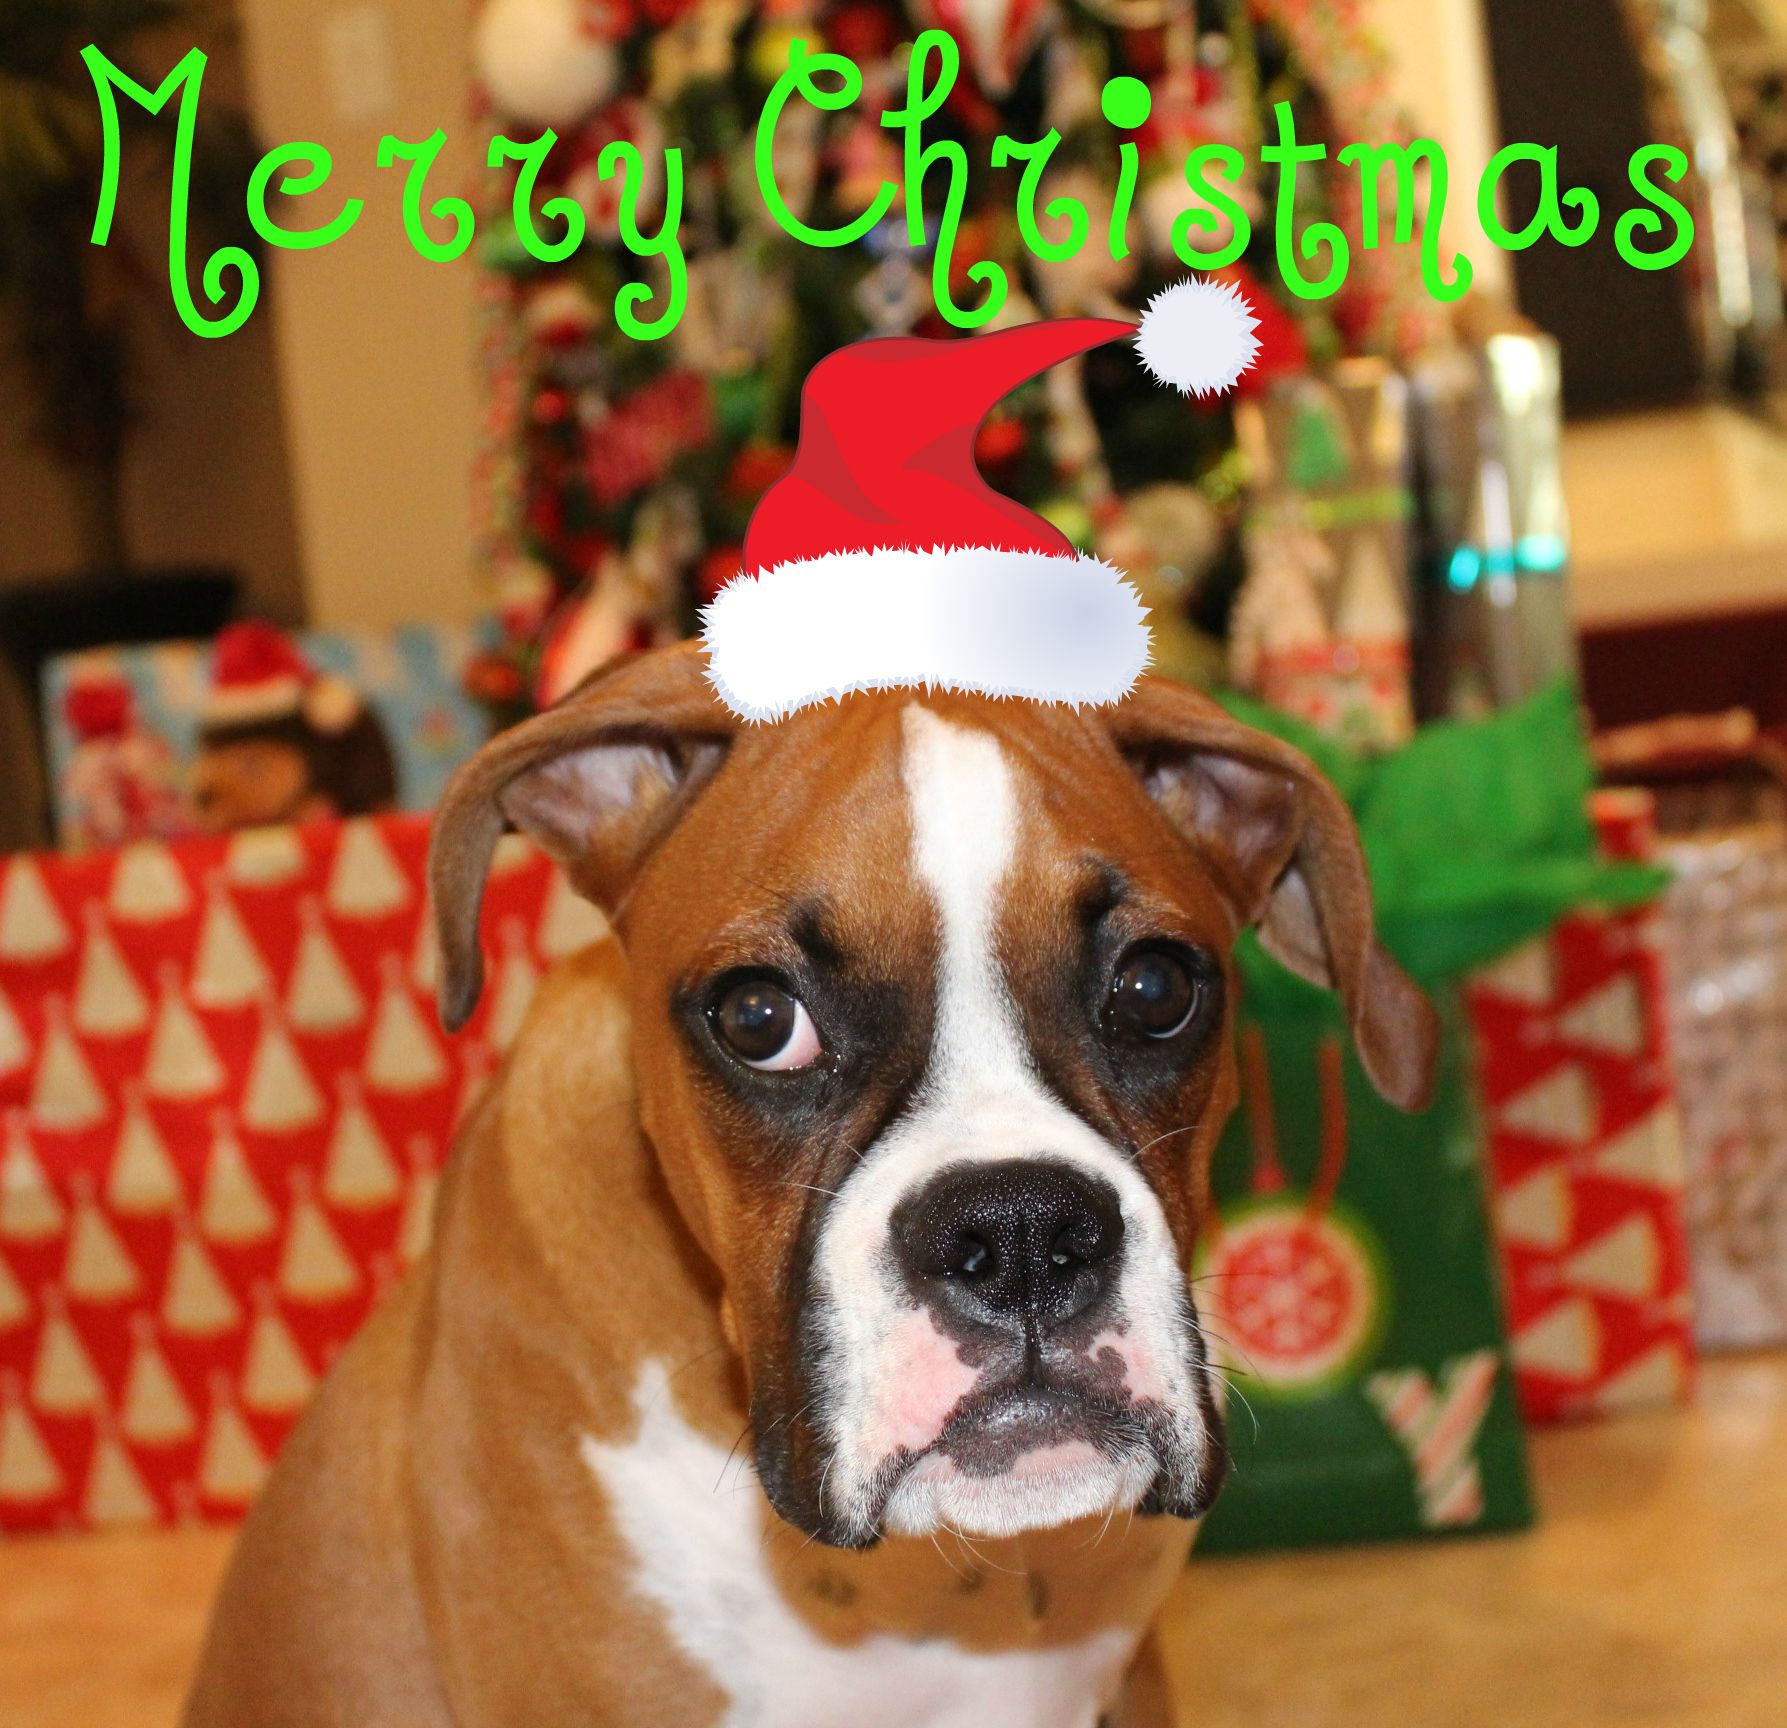 Merry Christmas Boxer Puppy Boxer Puppy